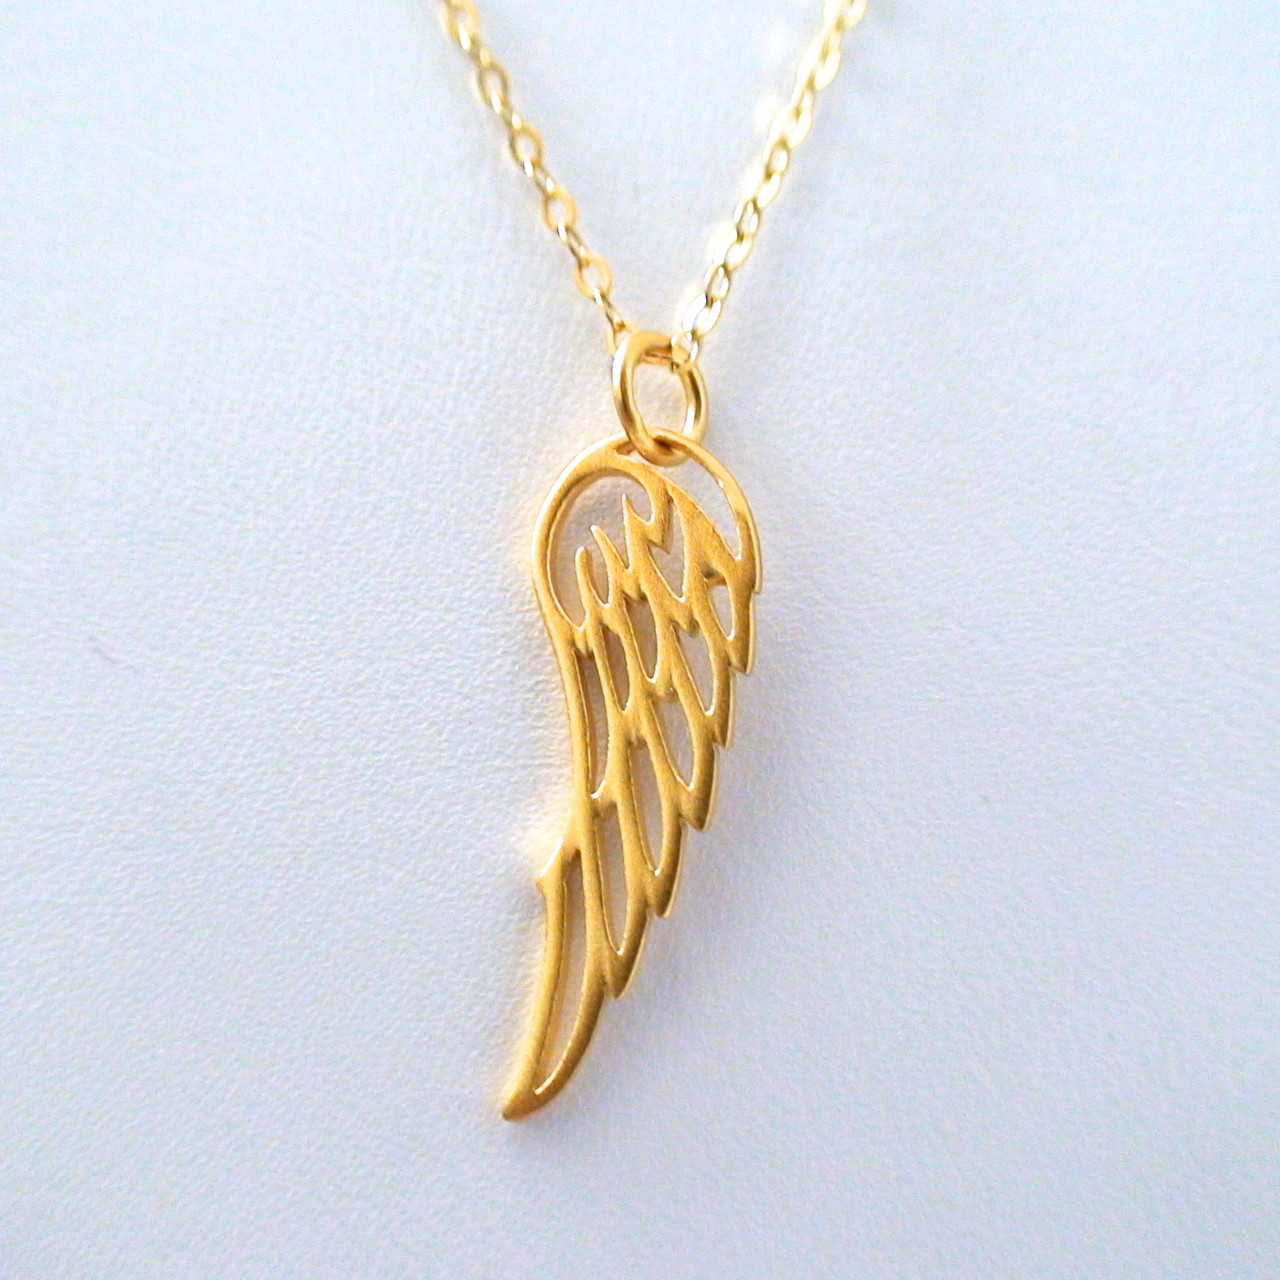 Angel Wing Charm Necklace 24K Gold Plate Sterling Silver